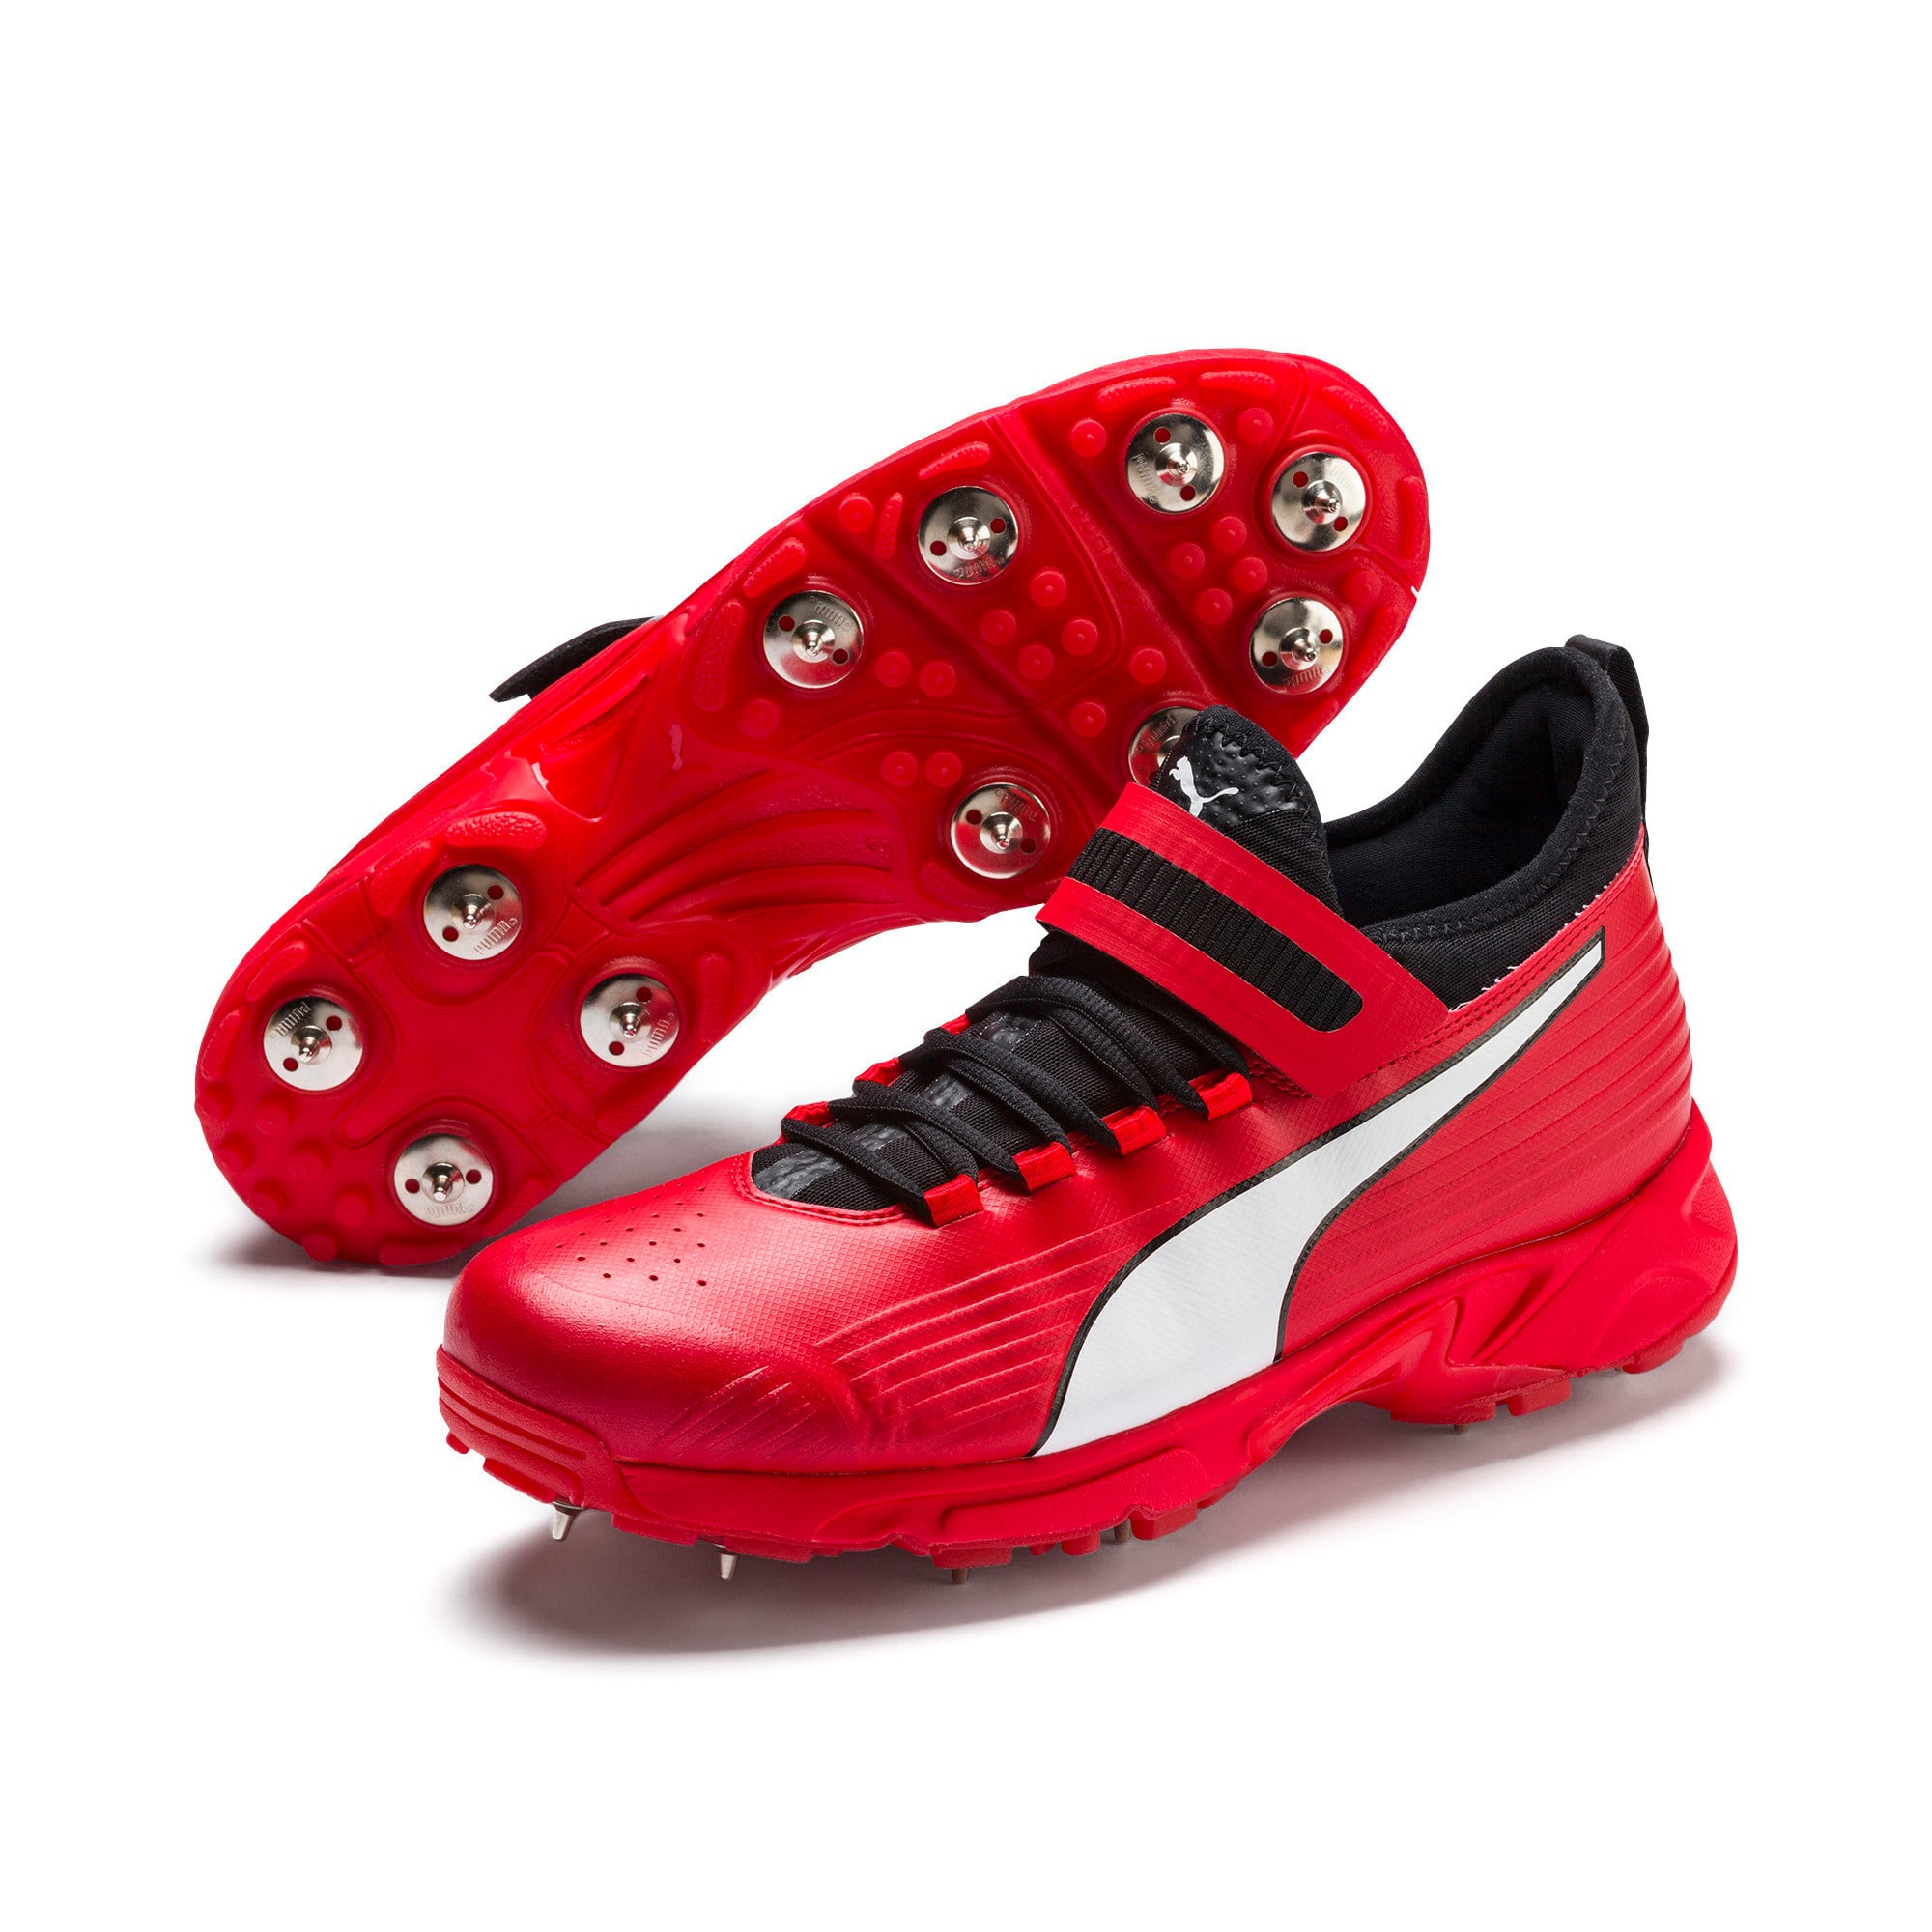 Thumbnail 6 of PUMA 19.1 Bowling Men's Cricket Shoes, High Risk Red-Black-White, medium-IND